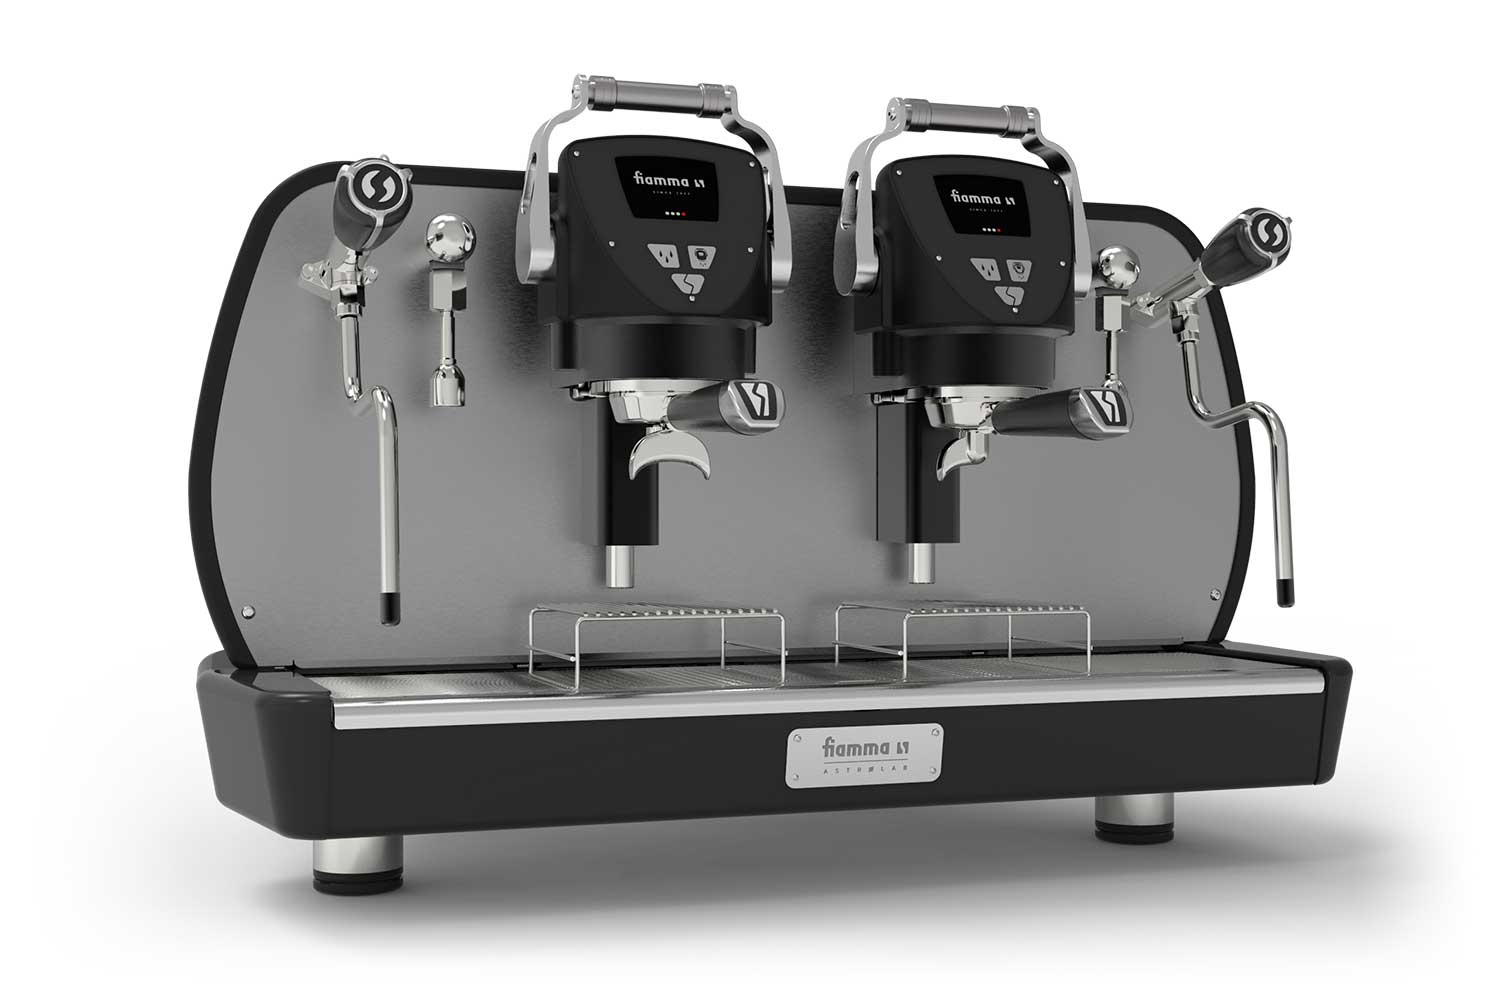 Fiamma Astrolab Espresso Machine